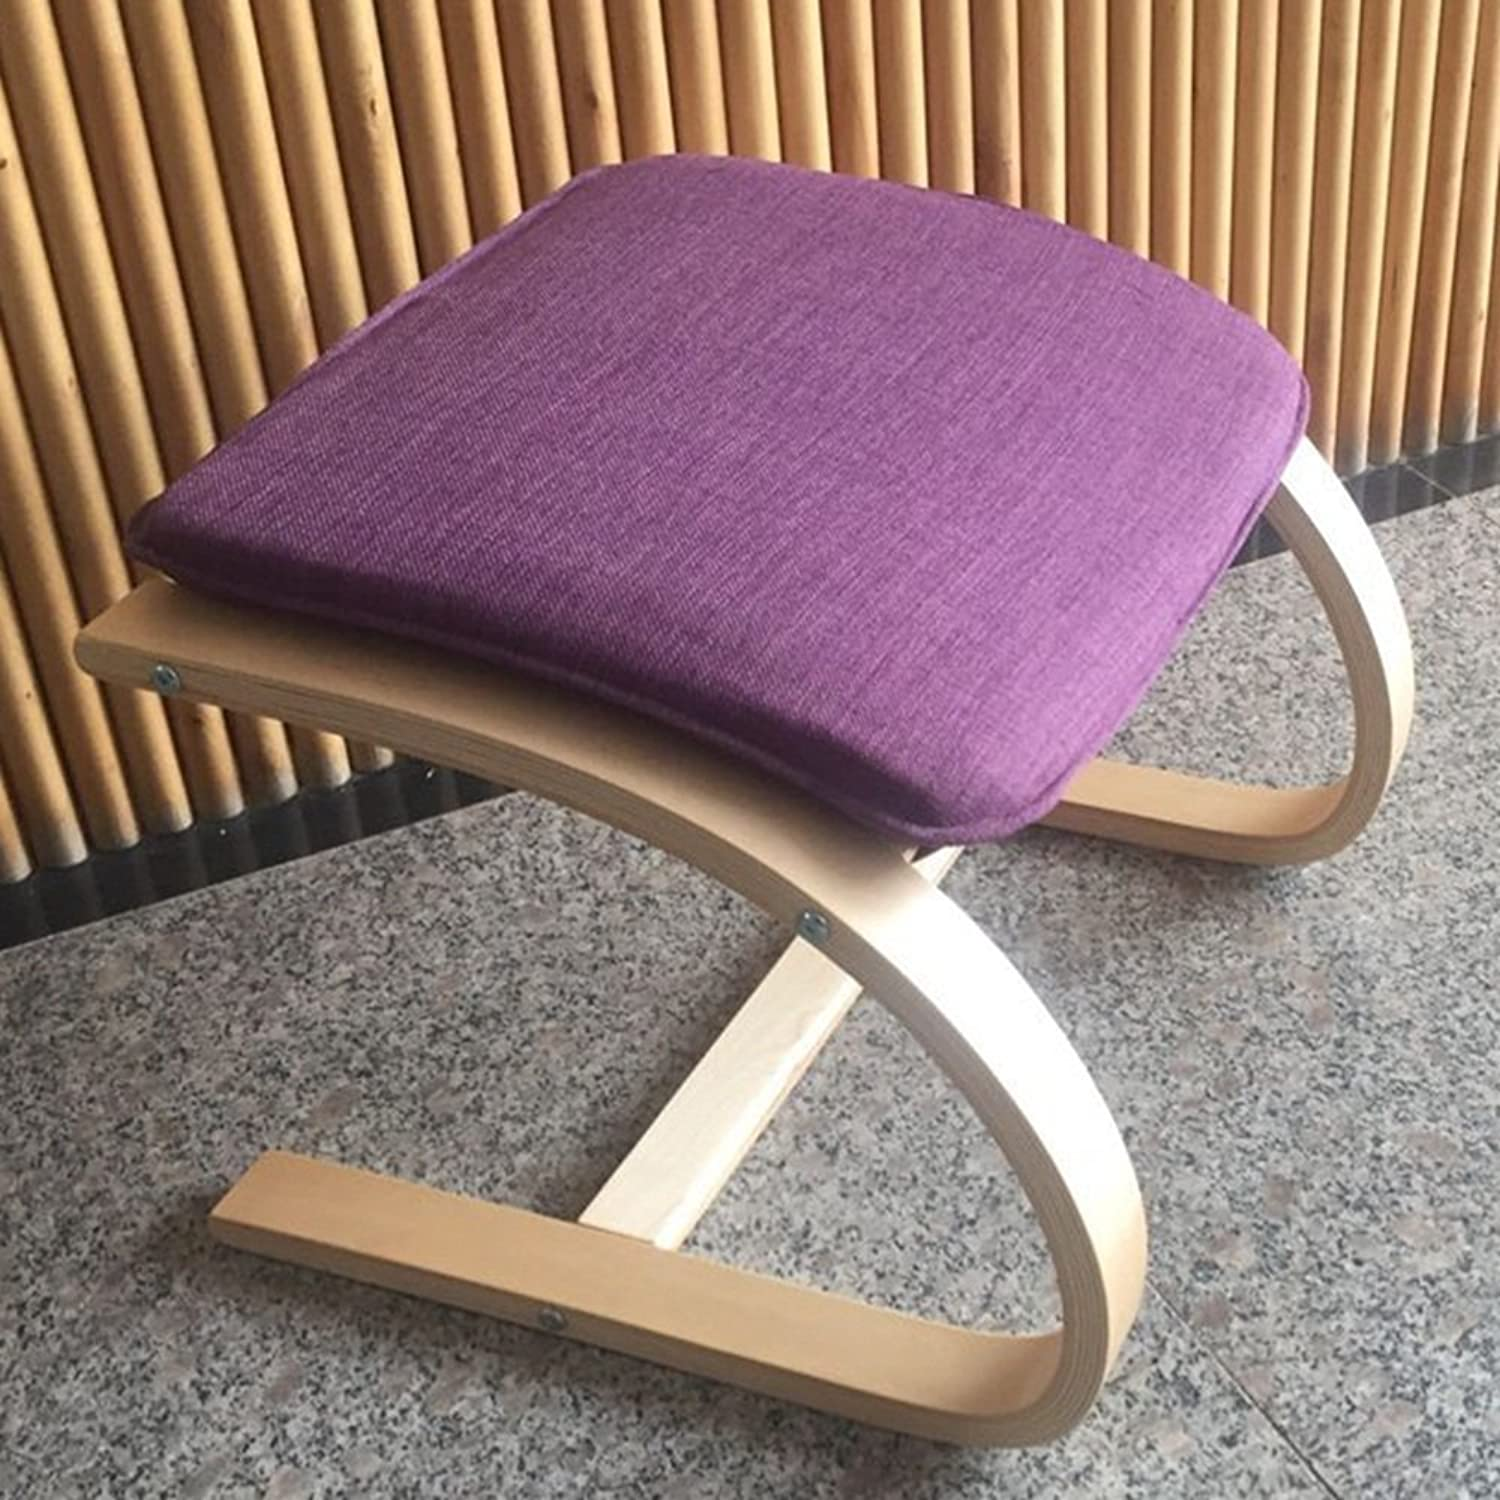 Small Round stool stool Foot Foot stool Casual stool Chaise Longue Companion Foot stool (color   Purple)